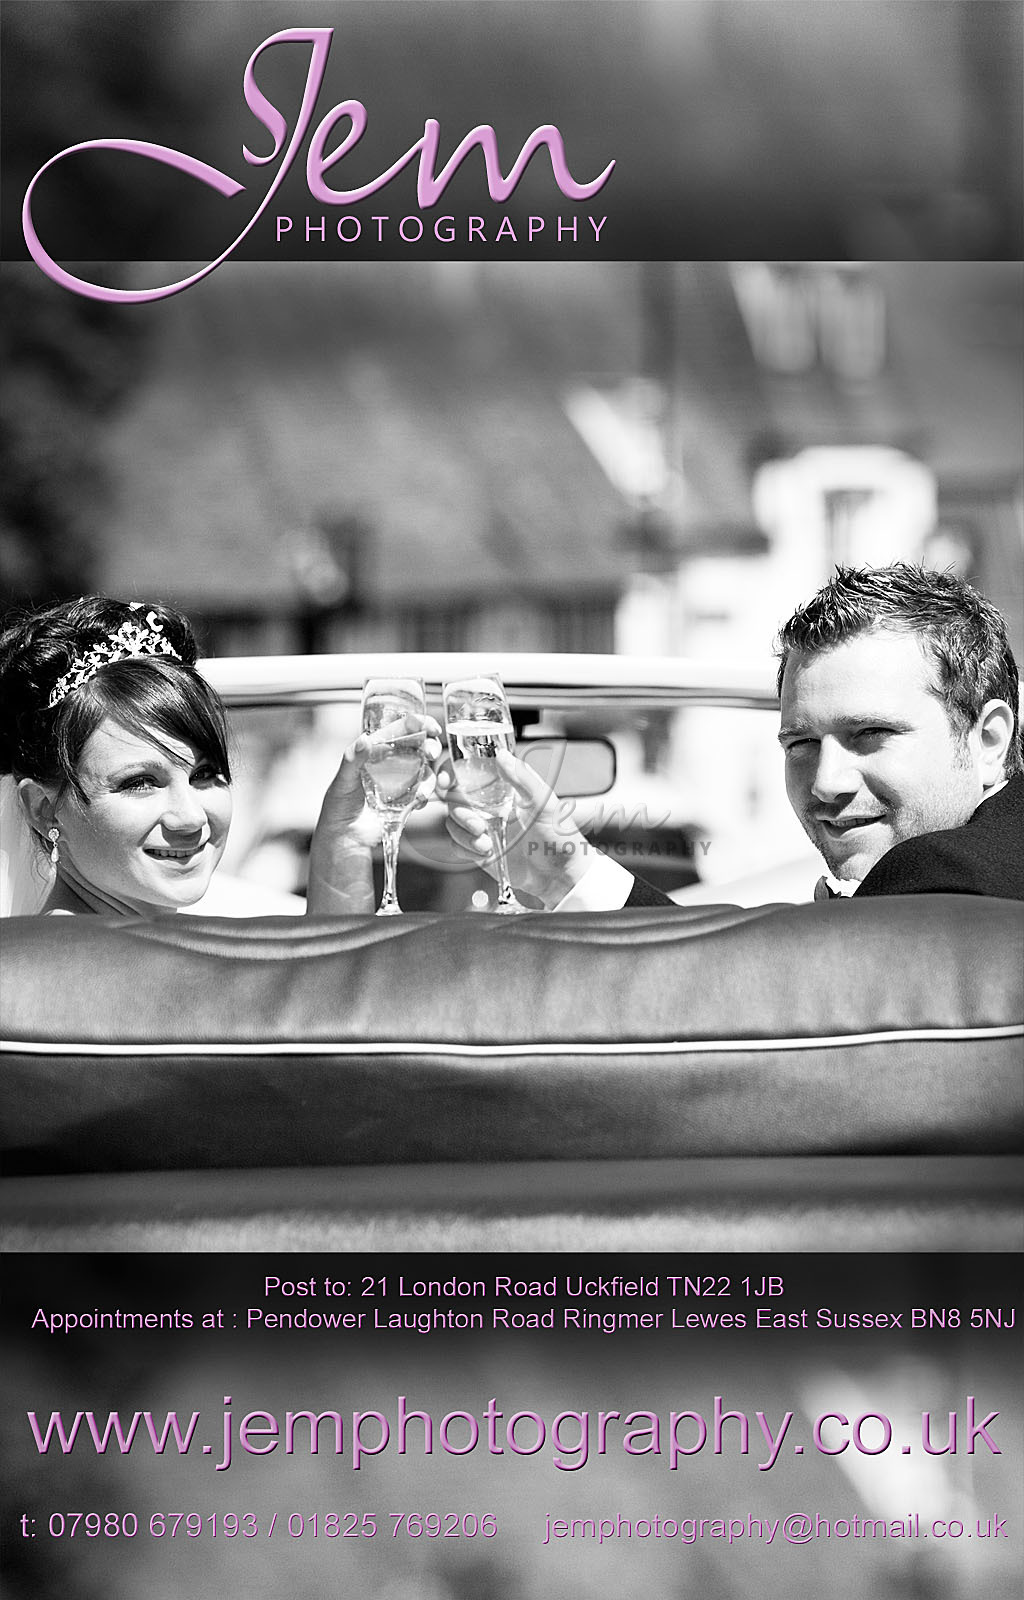 Page 18, Uckfield Wedding Portrait Property Photography East Sussex Design